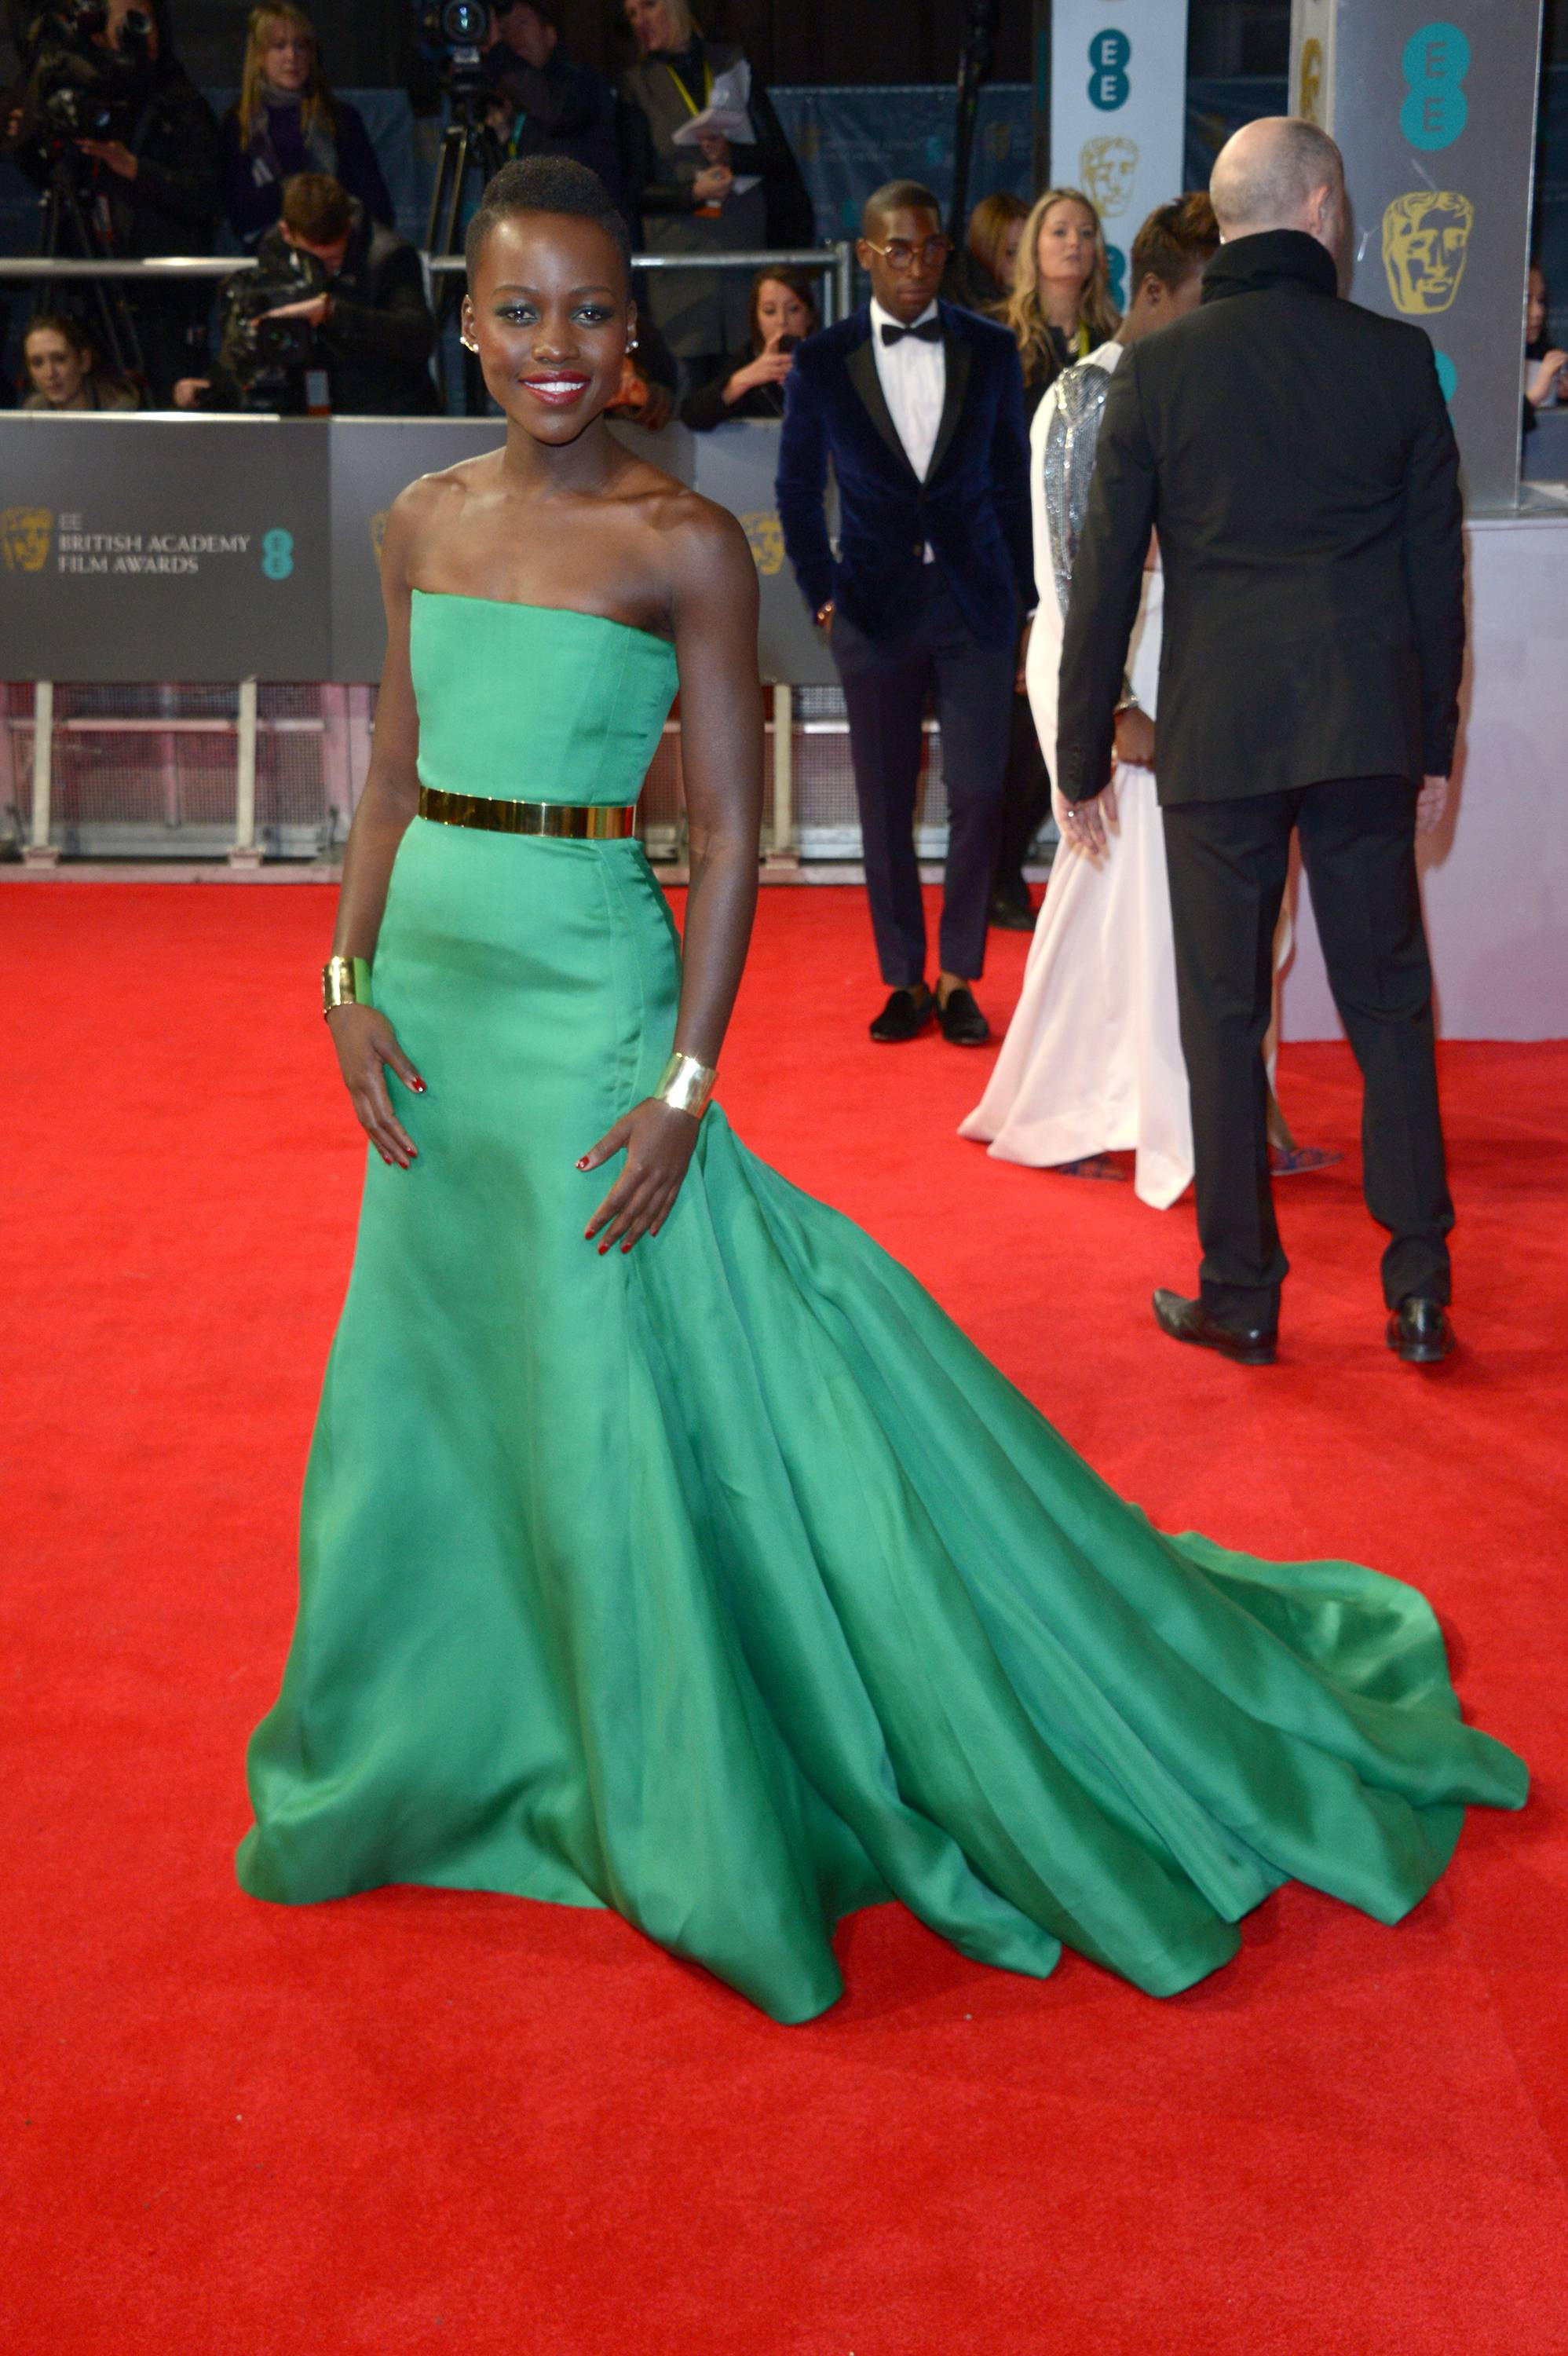 Kenyan actress Lupita Nyong'o poses for photographers on the red carpet at the EE British Academy Film Awards held at the Royal Opera House on Sunday Feb. 16, 2014, in London.